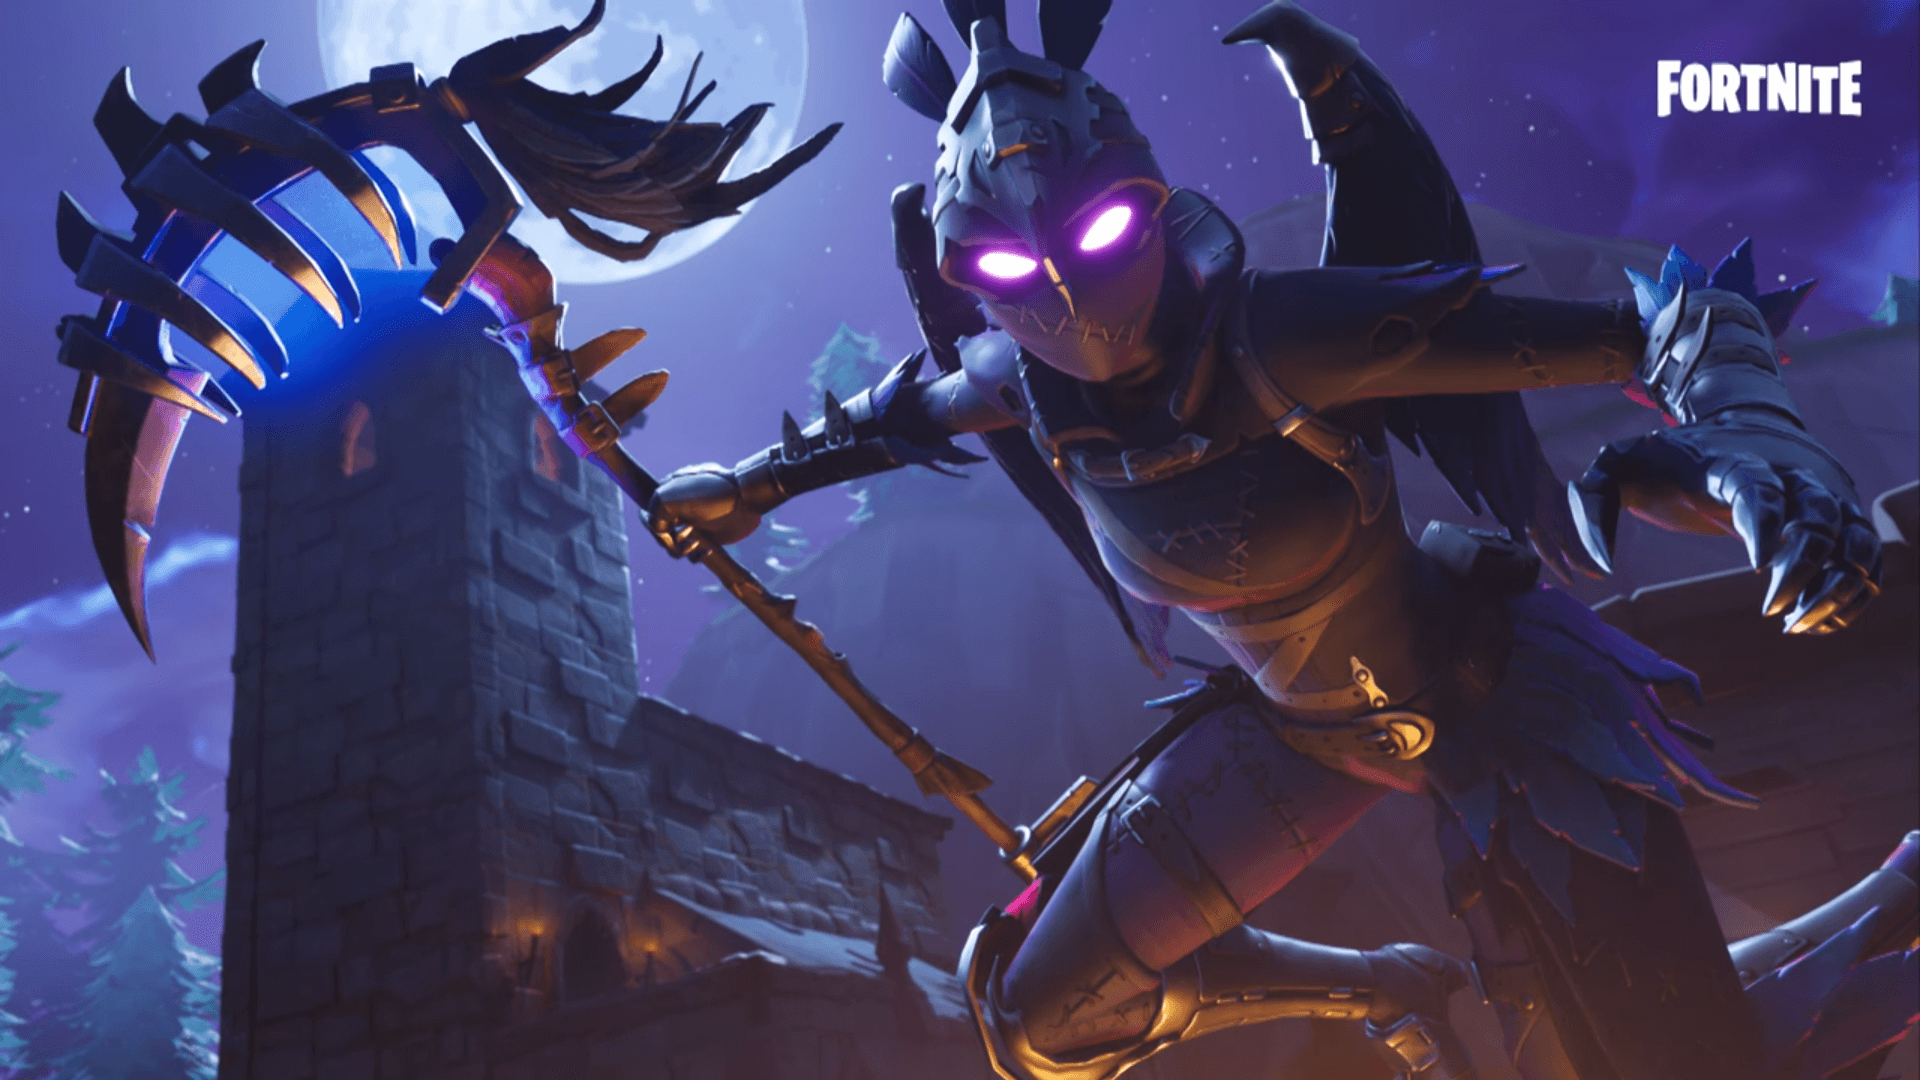 Fortnite Raven Skin Wallpapers 64949 1920x1080px